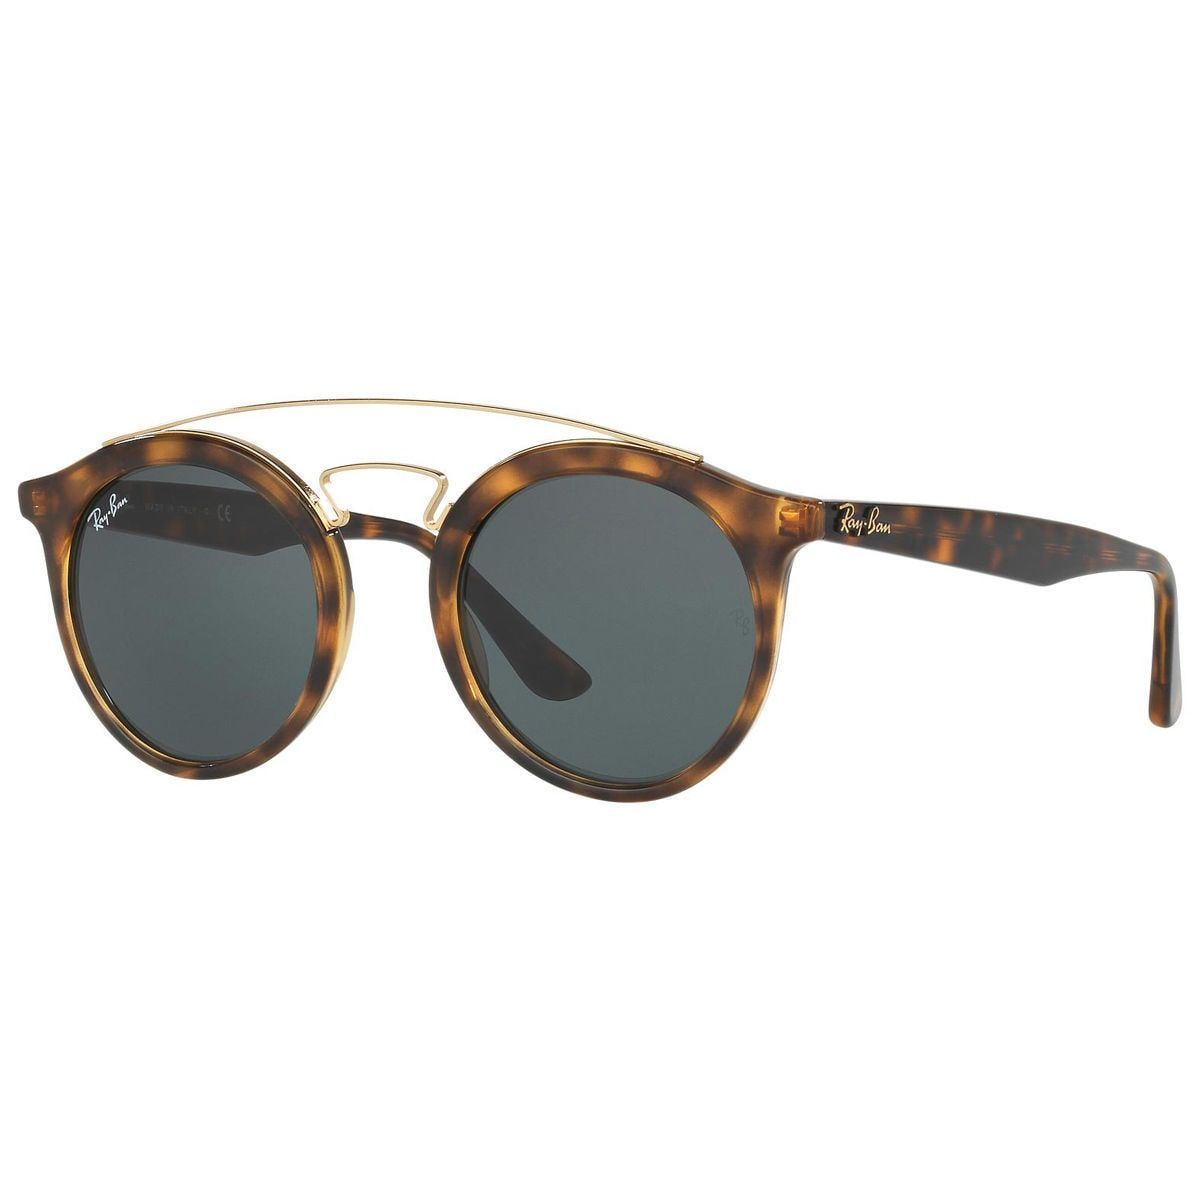 Overstock.com  Online Shopping - Bedding, Furniture, Electronics, Jewelry,  Clothing   more. Mens SunglassesRound ... 91a65a734a43